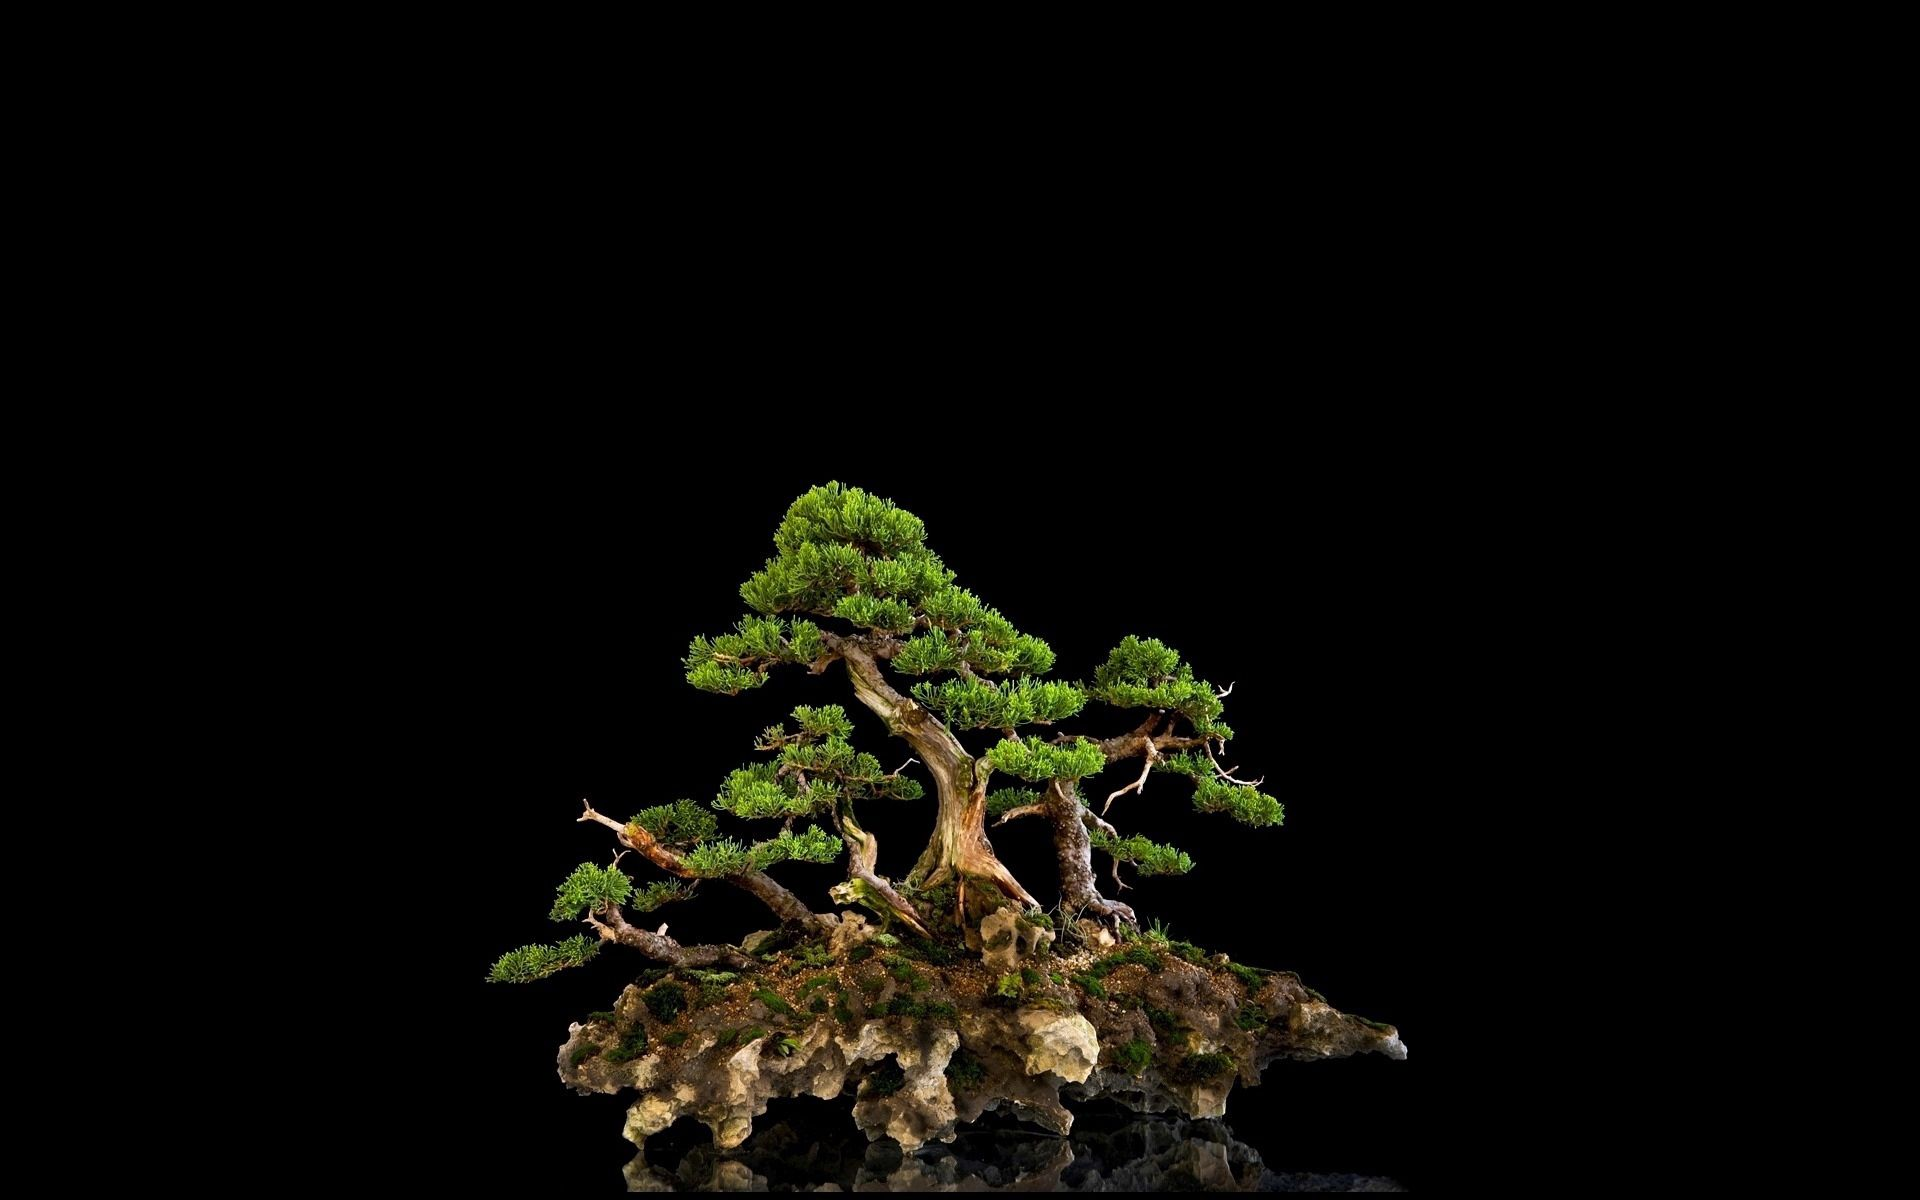 97947 download wallpaper Nature, Wood, Tree, Bonsai, Black Background screensavers and pictures for free